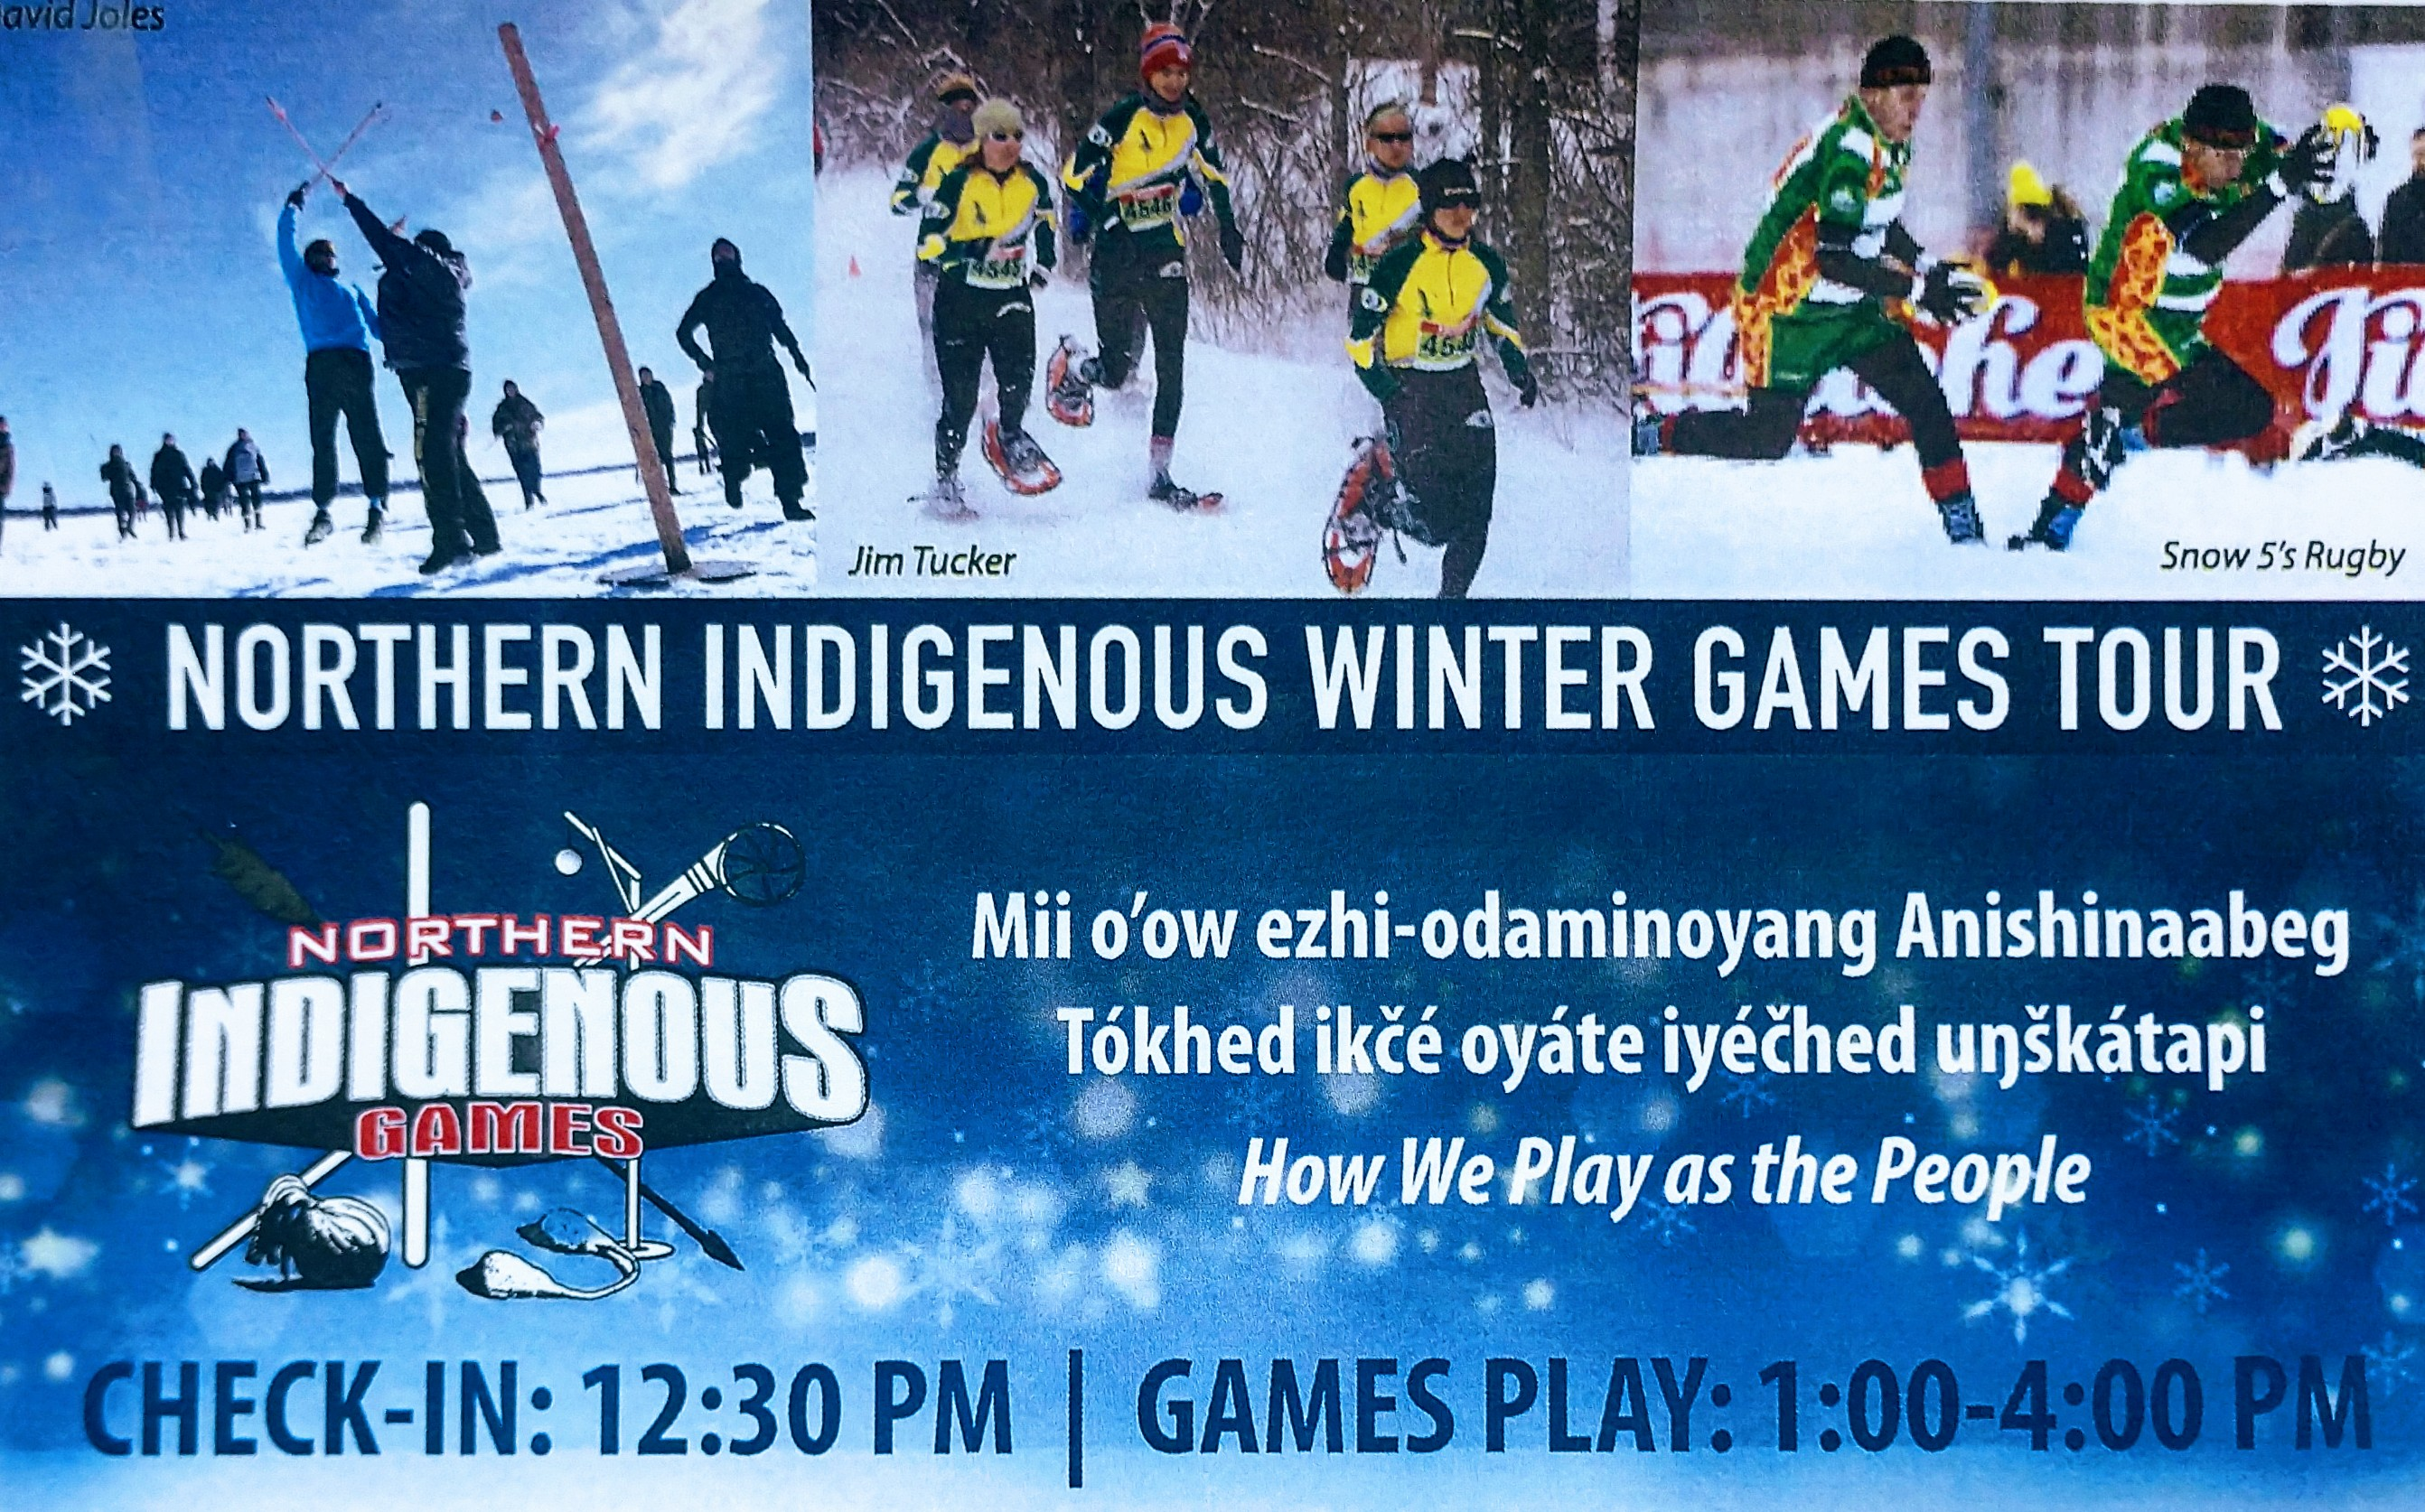 Northern Indigenous Winter Games Tour Begins January 5th!